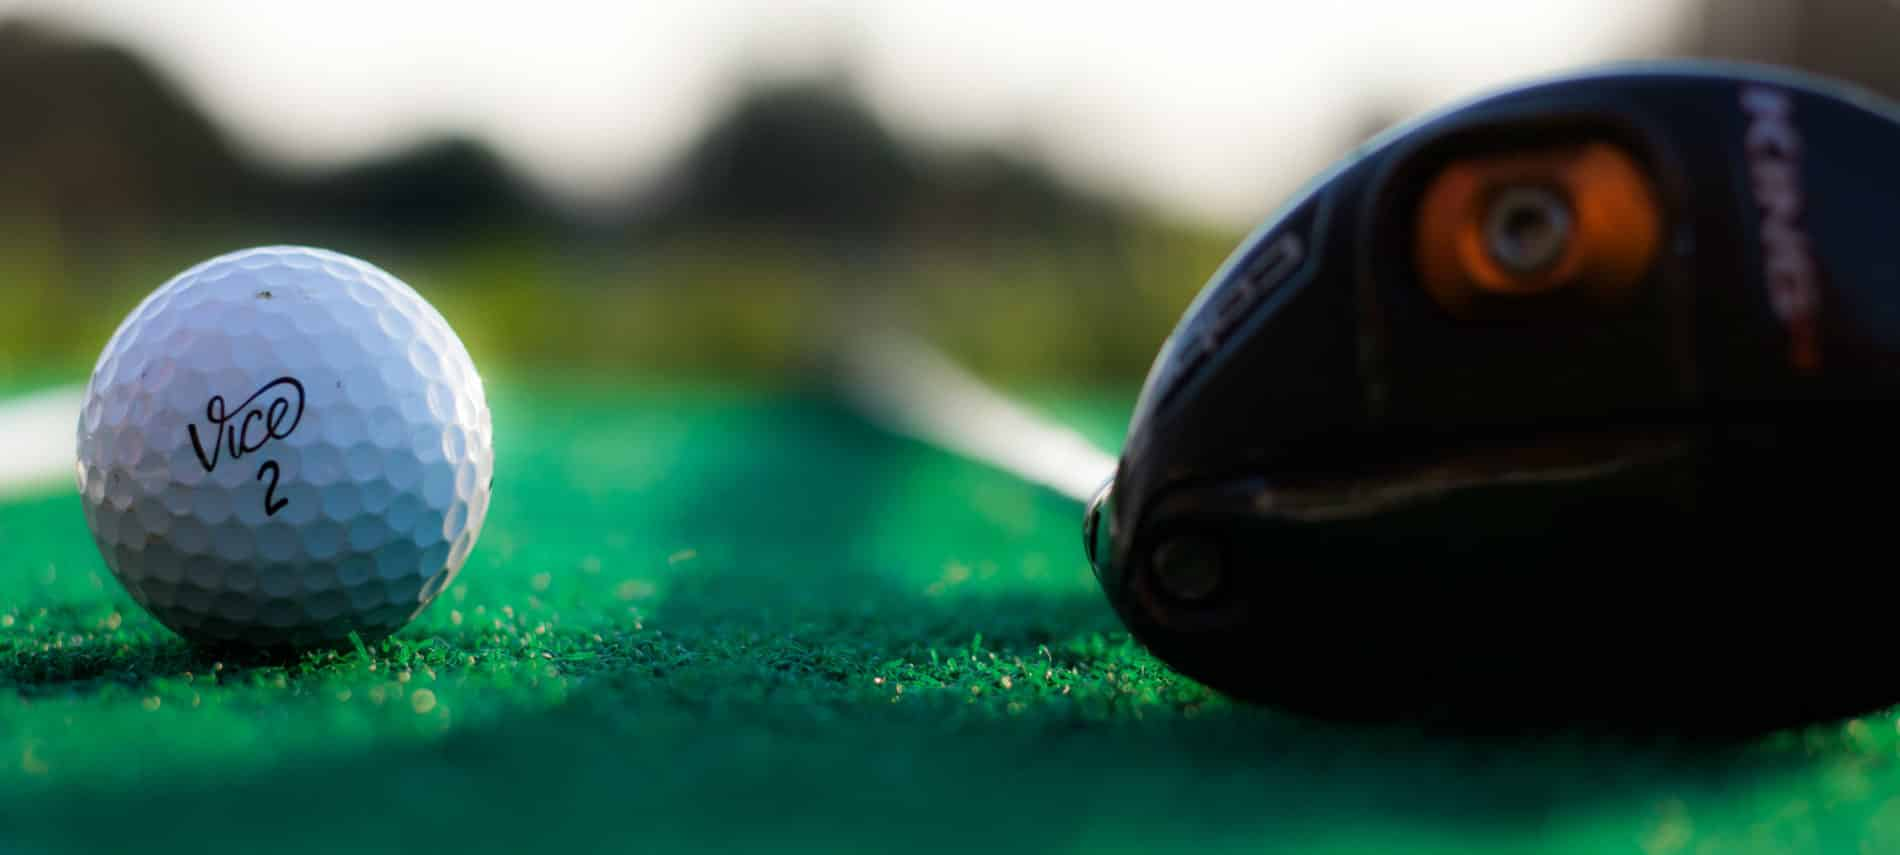 The head of a driver next to a golf ball on the green.